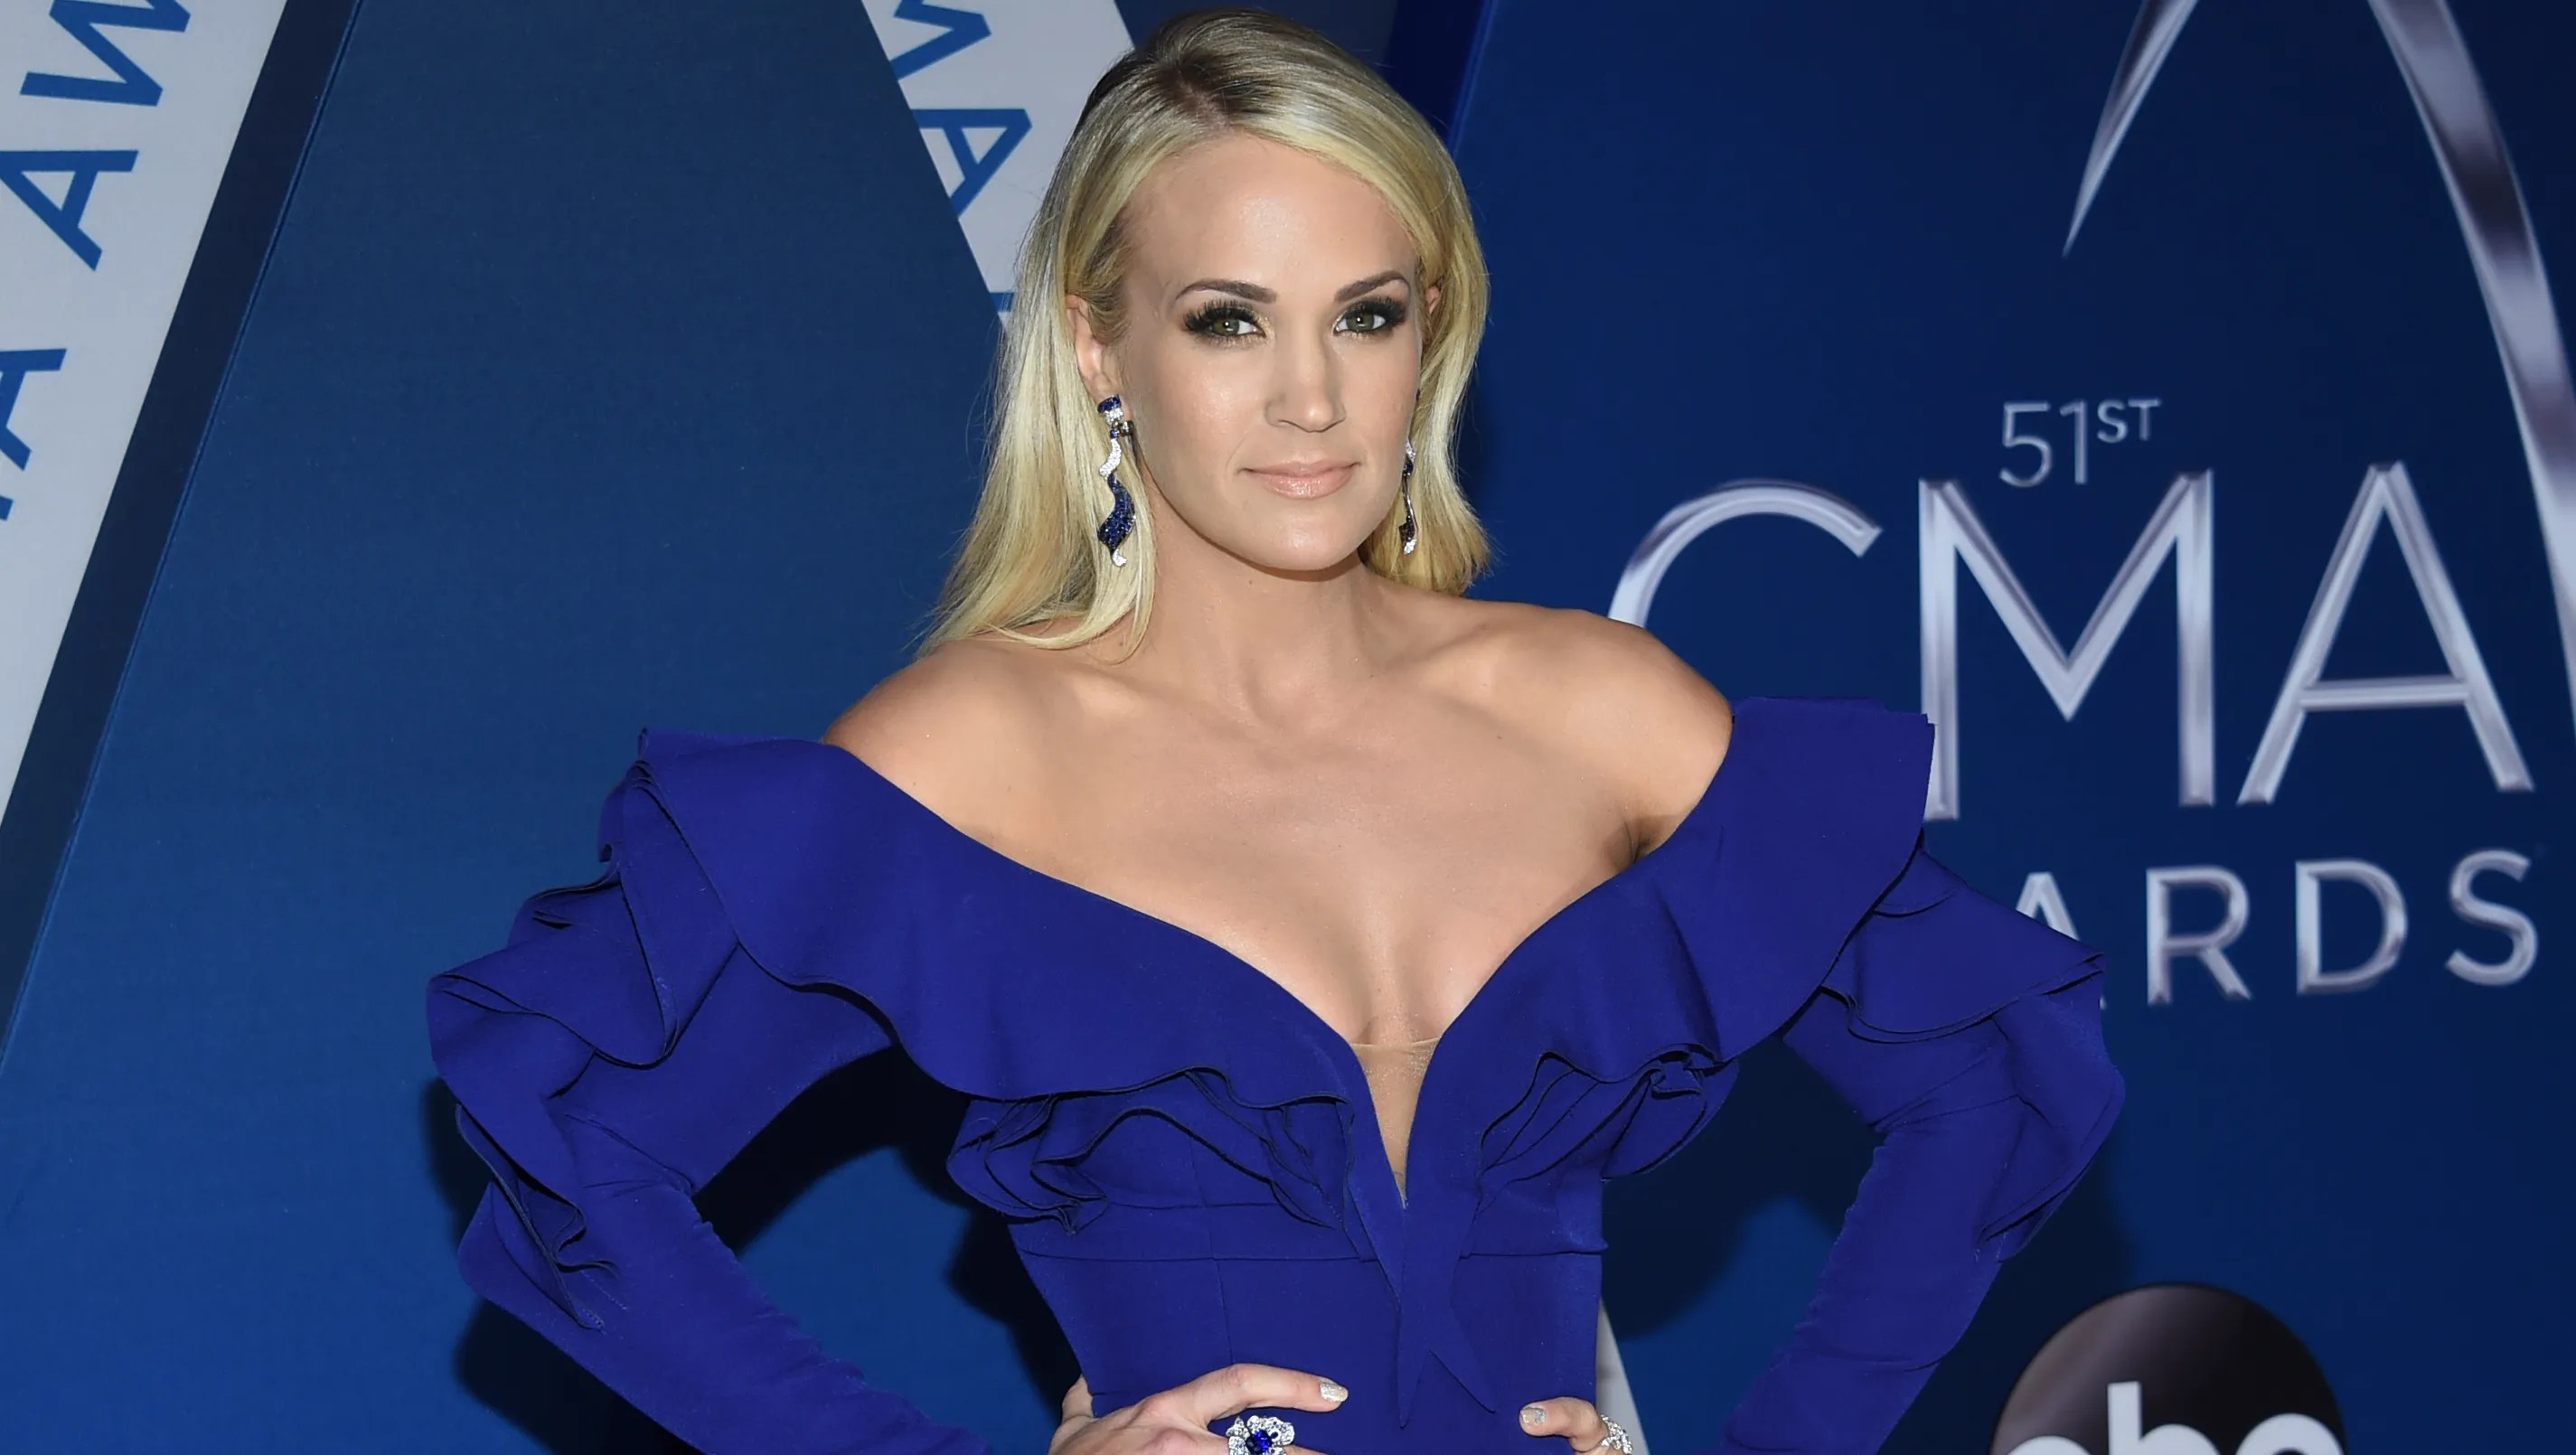 Carrie Underwood's face 'not quite looking the same' after ...